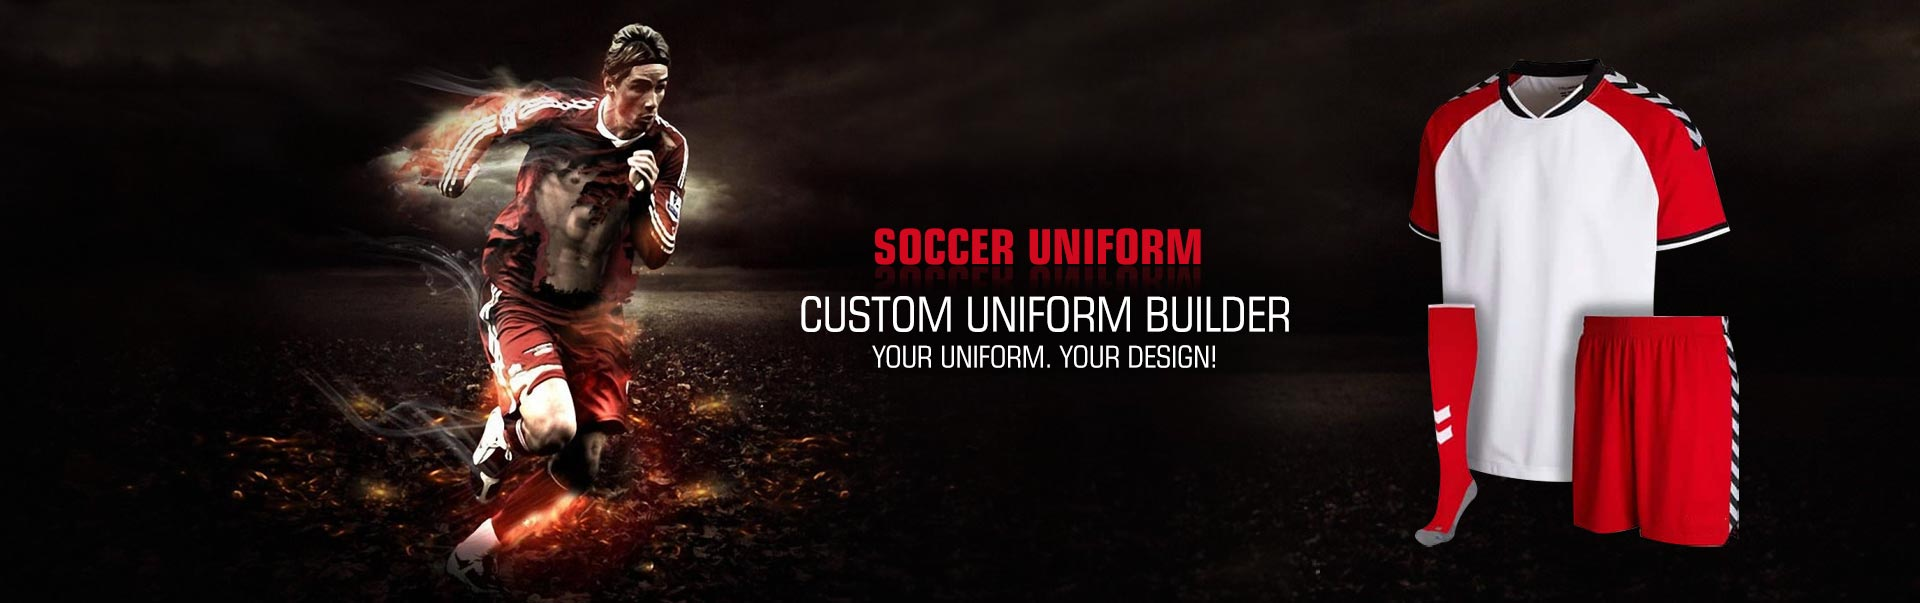 Soccer Uniform Wholesaler, Suppliers in Anaheim